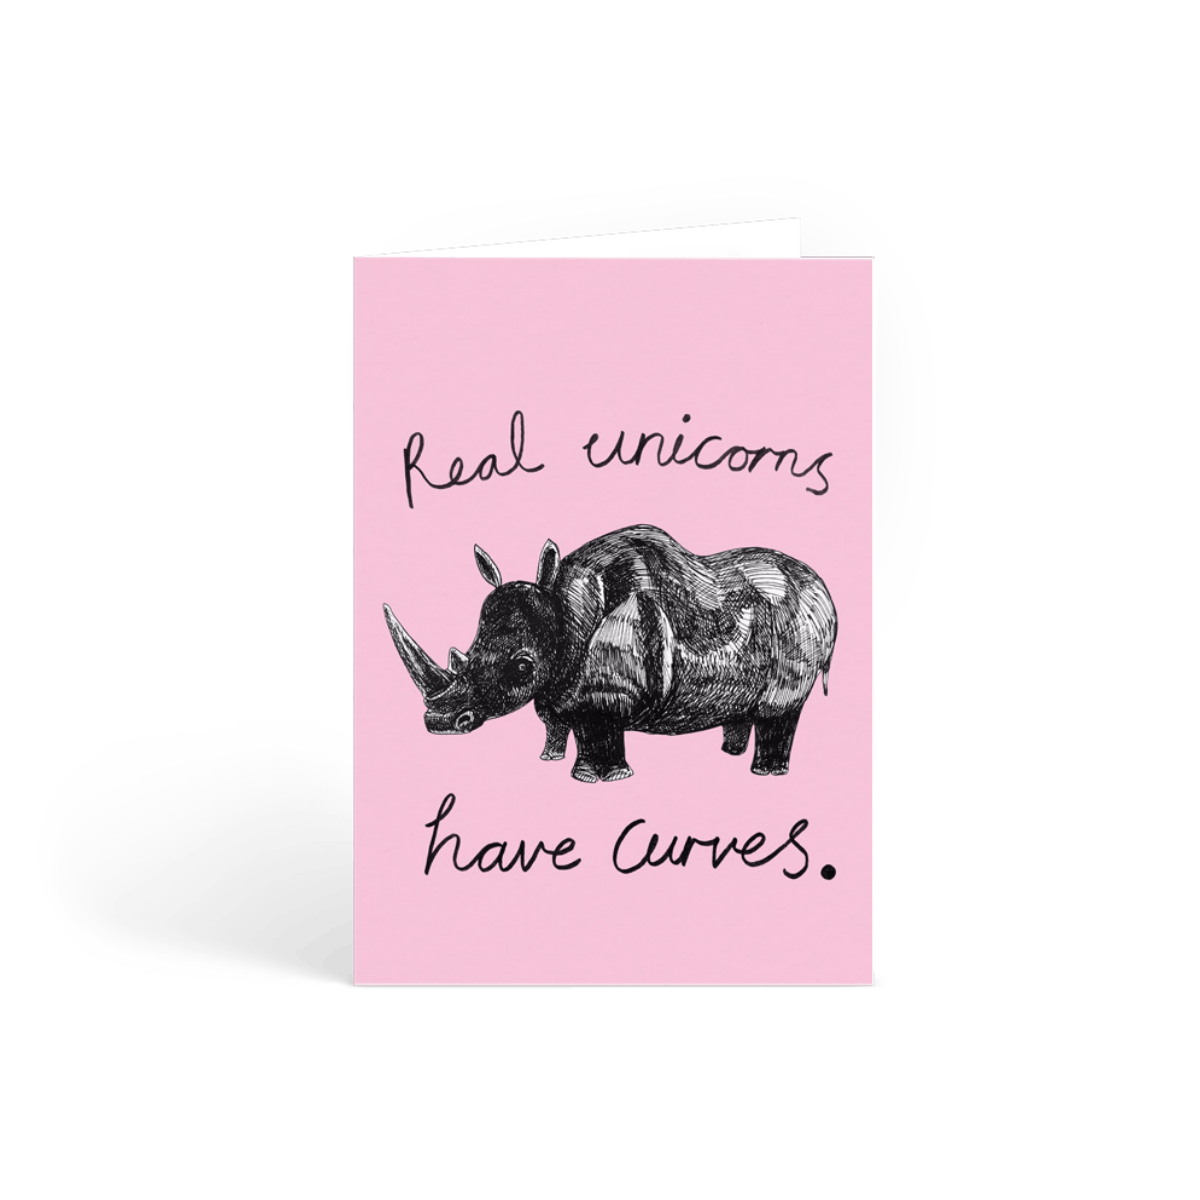 Https%3a%2f%2fwww.papier.com%2fproduct image%2f23939%2f2%2freal unicorns 5989 front 1504266527.png?ixlib=rb 1.1